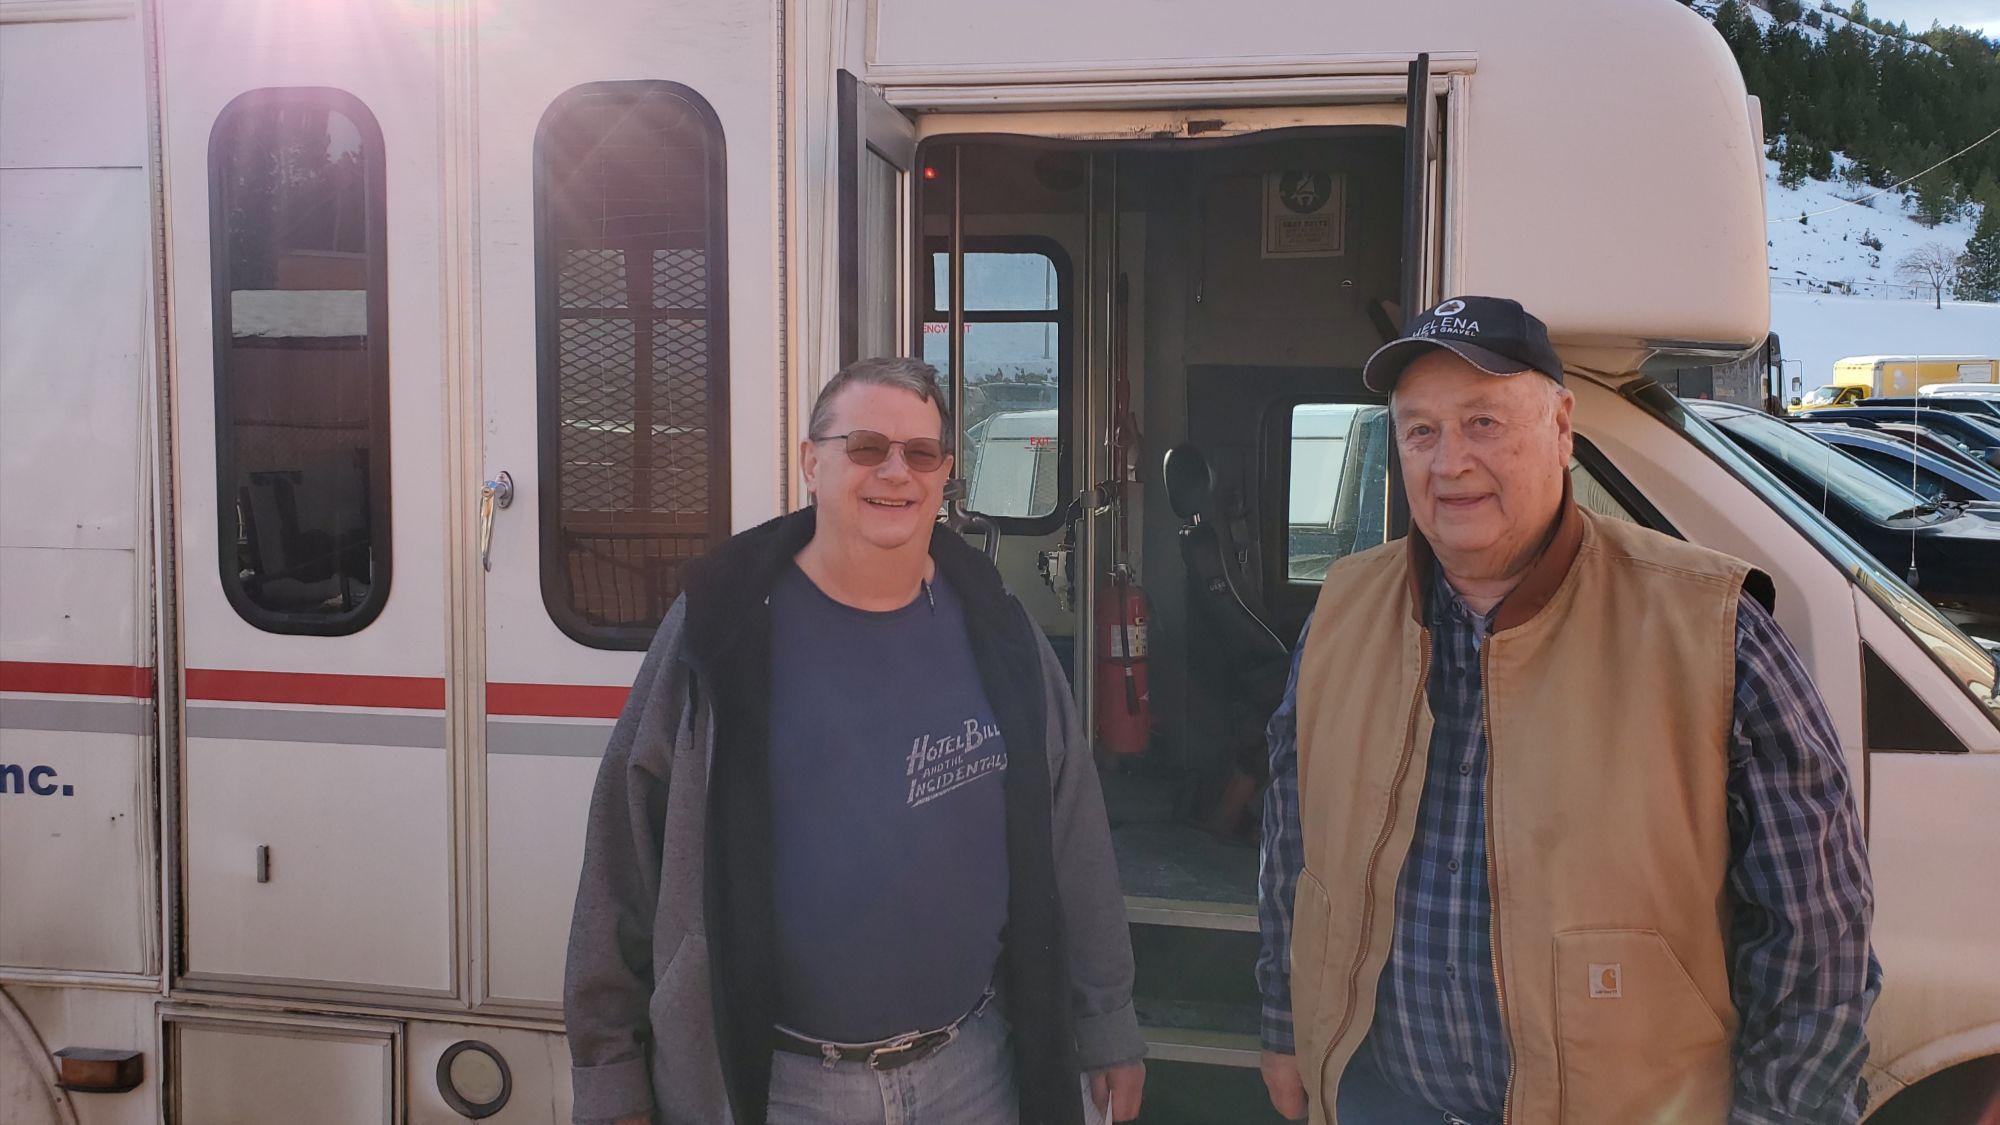 Pictured: Rocky's two bus drivers in front of the RMDC Senior Bus.